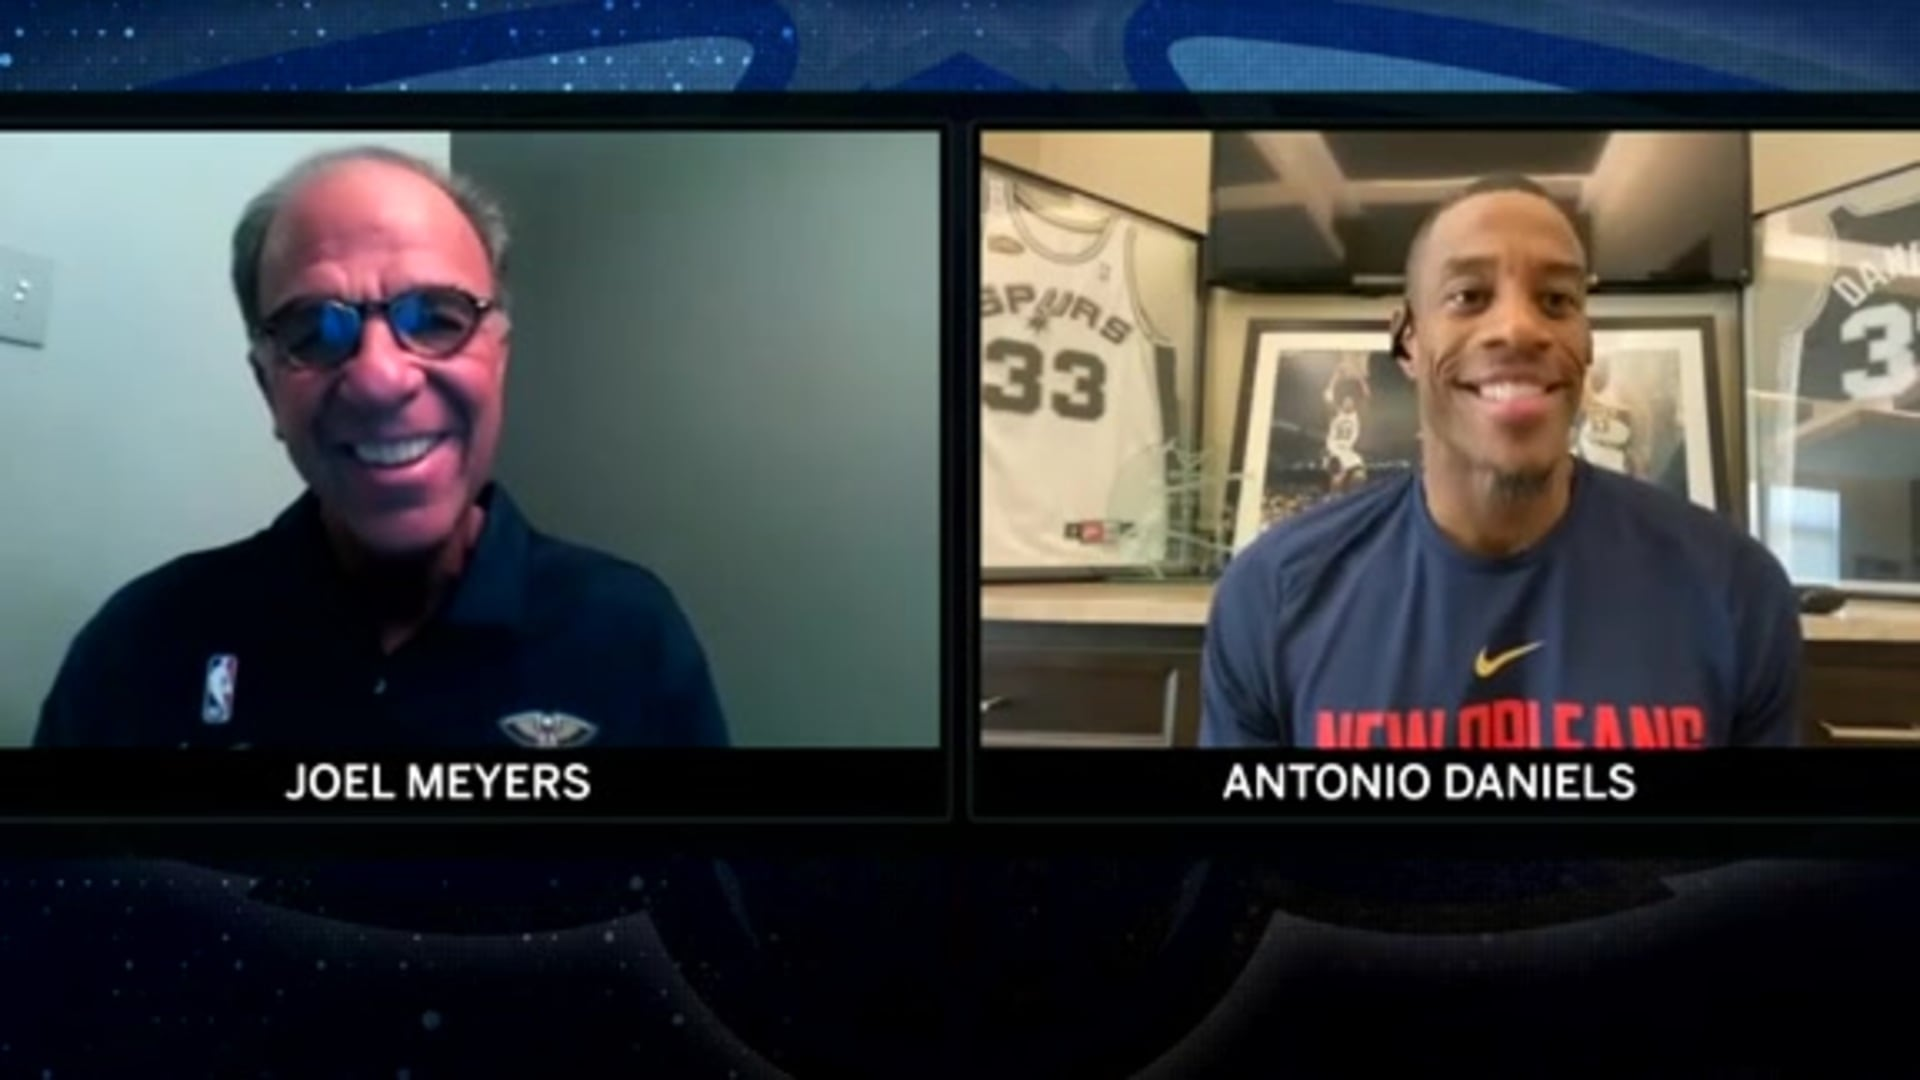 Joel Meyers & Antonio Daniels talk NBA bubble life ahead of Pelicans vs. Jazz